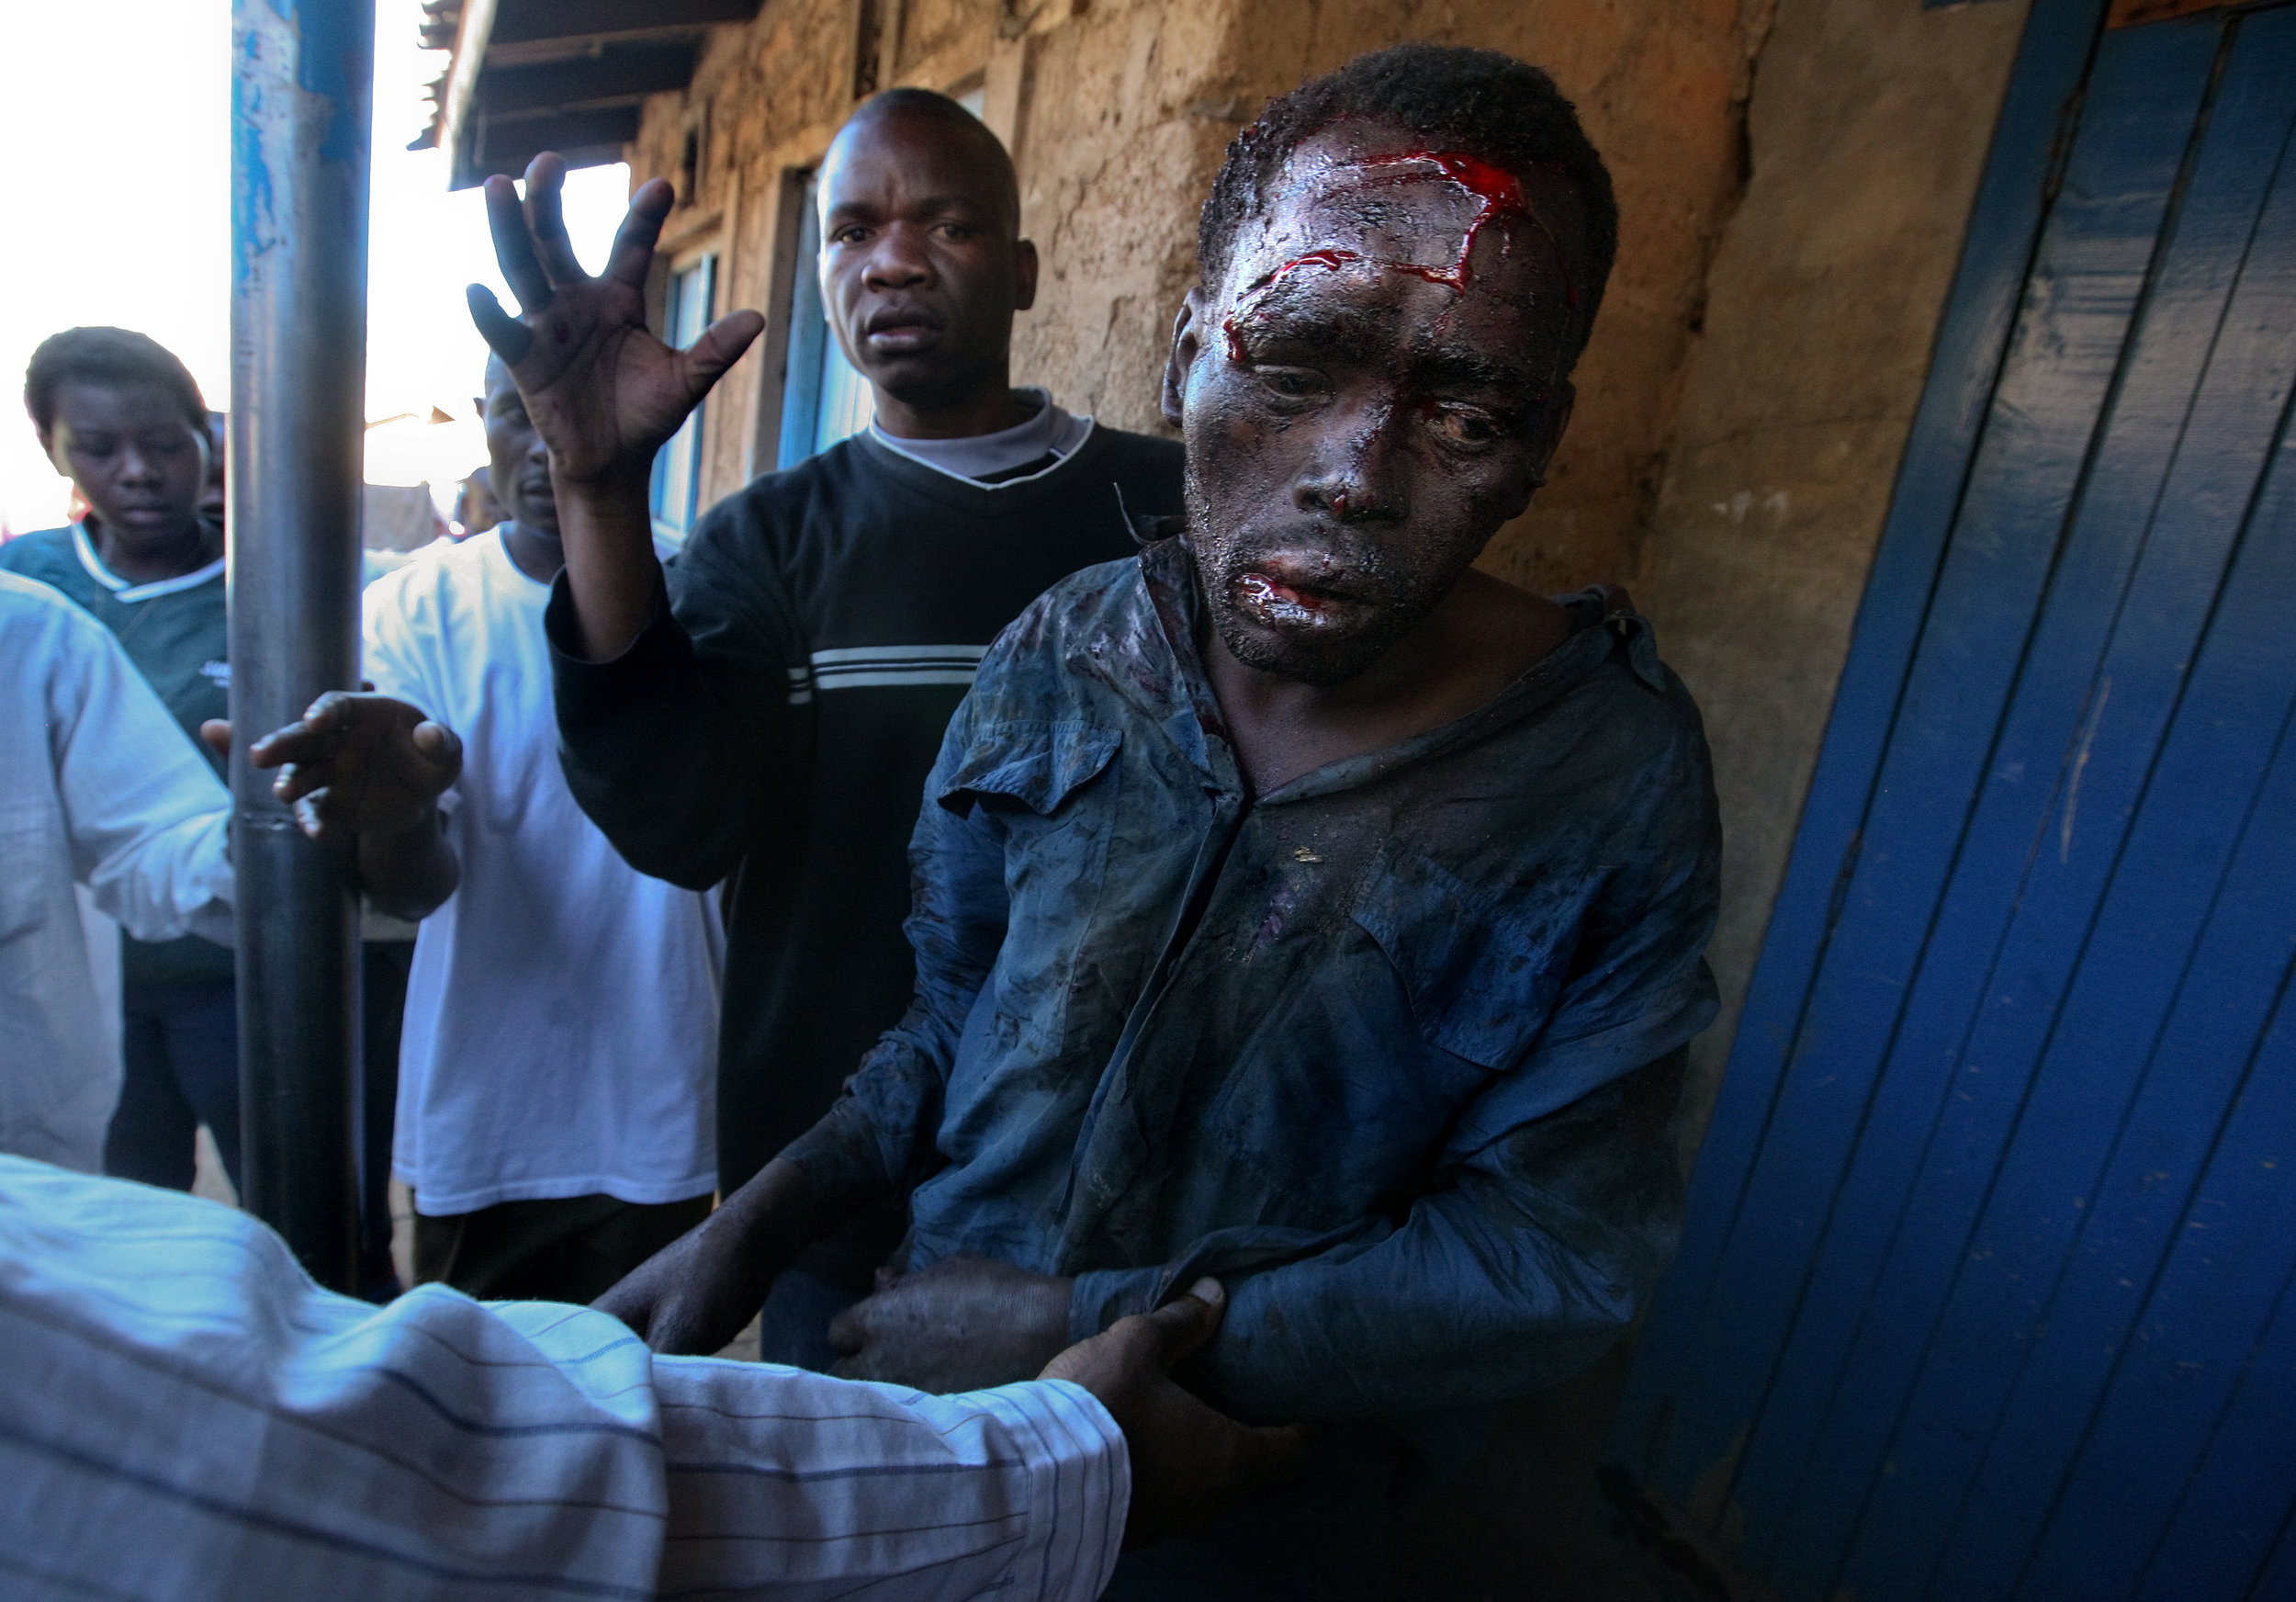 A man who was hit on the head with a hoe and beaten by an angry crowd, is helped to the hospital by good samaritans. Looting by ODM supporters sparked riots in the Mathare slums, pitting rival ethnic groups against each other across a barricade.